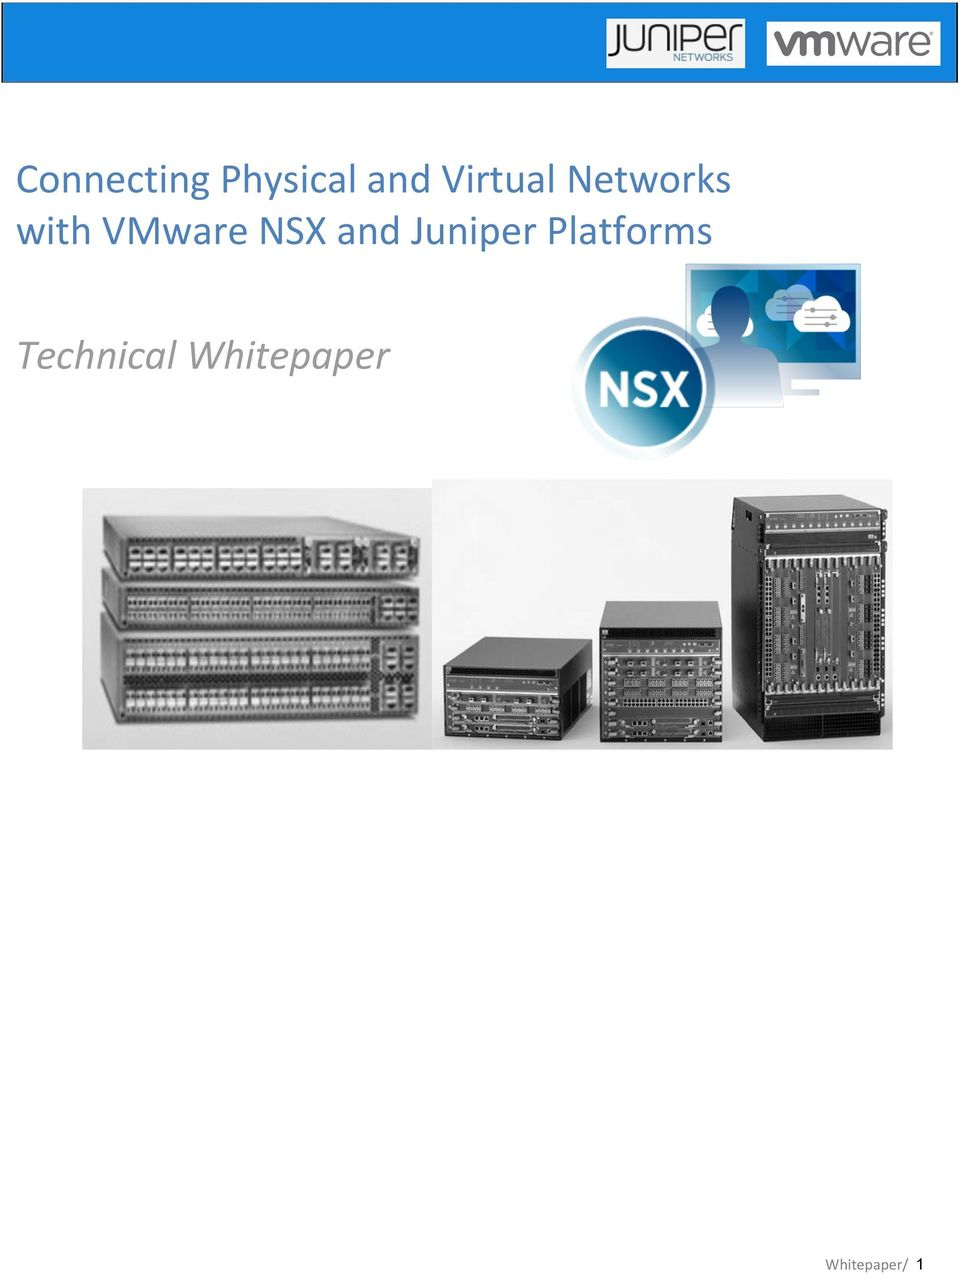 NSX and Juniper Platforms